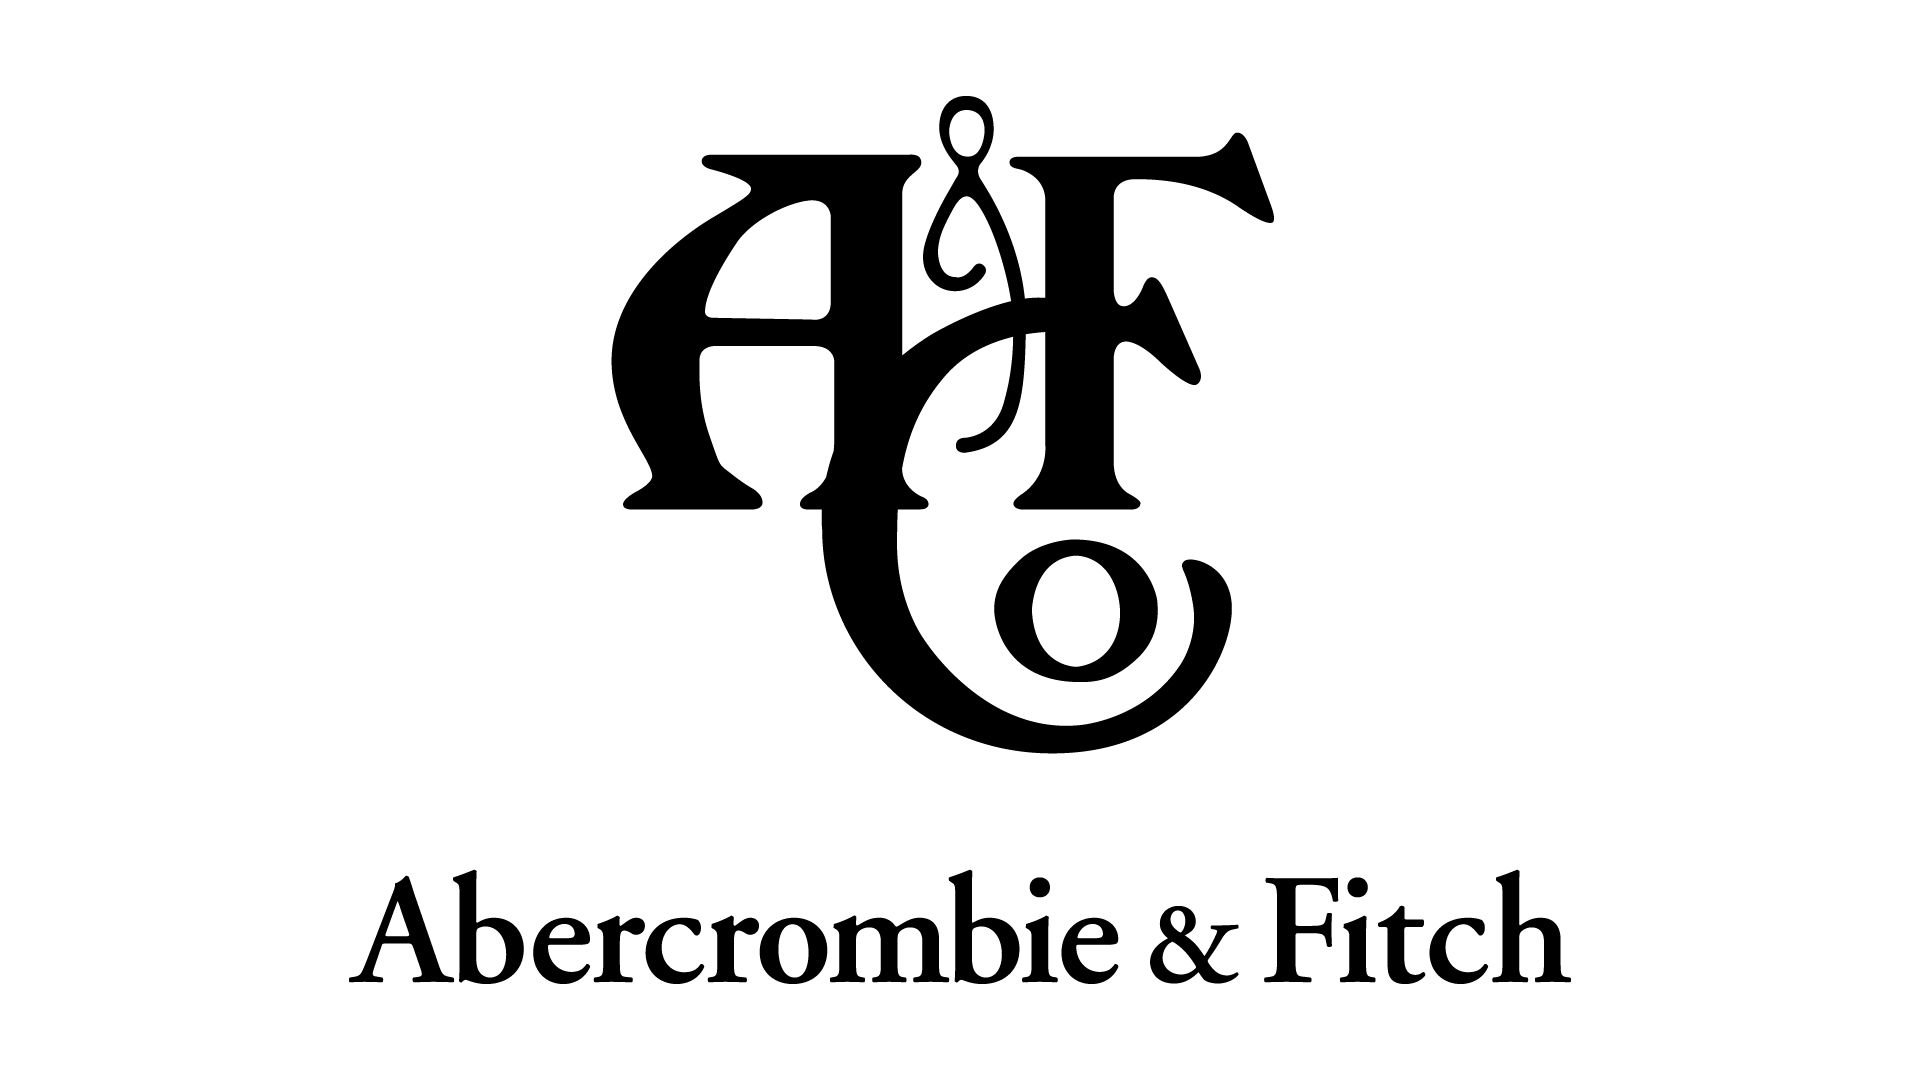 Abercrombie Fitch Nyse Anf Rings The Nyse Closing Bell